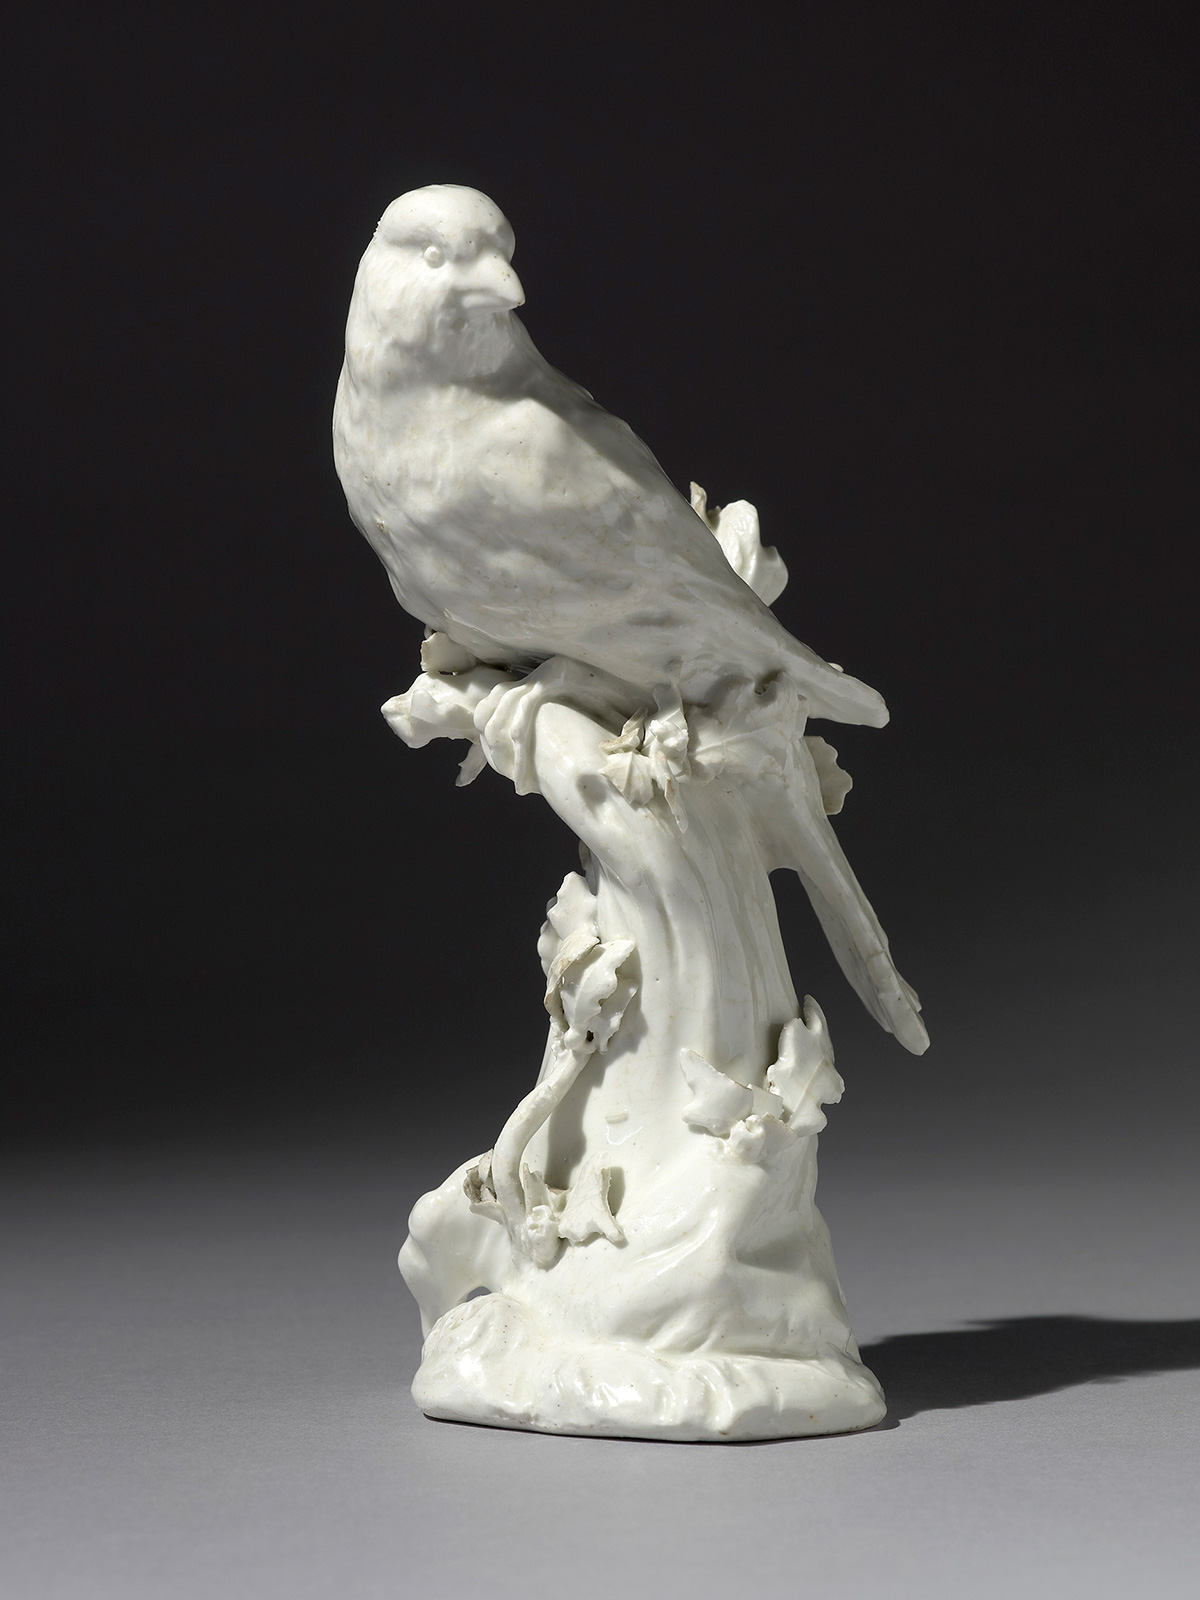 Chelsea Model of a Finch perched in a tree